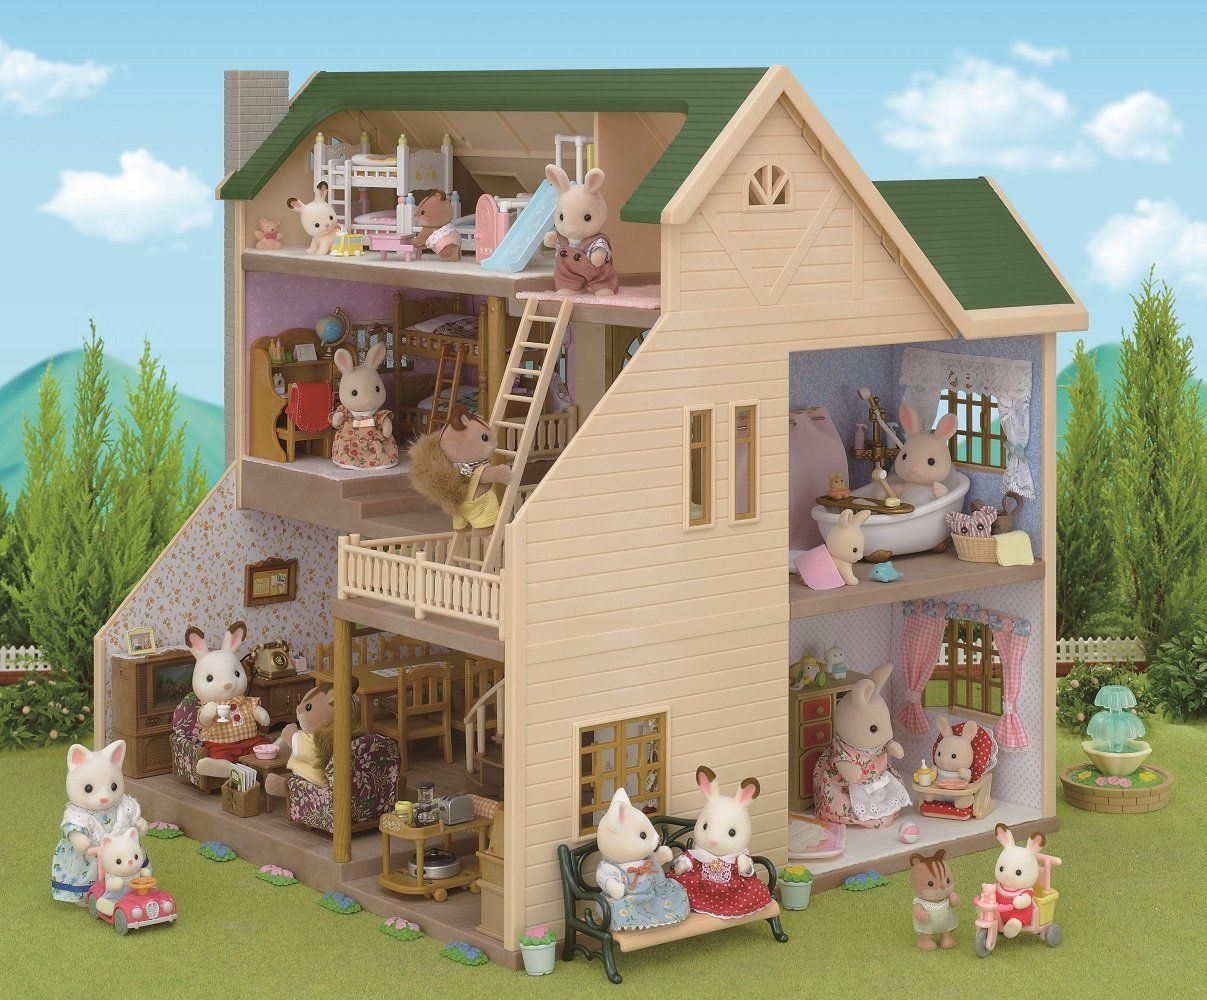 Buy Sylvanian Families Comfy Living Room Set Playsets And Figures Argos In 2020 Comfy Living Room Living Room Sets Fun Living Room